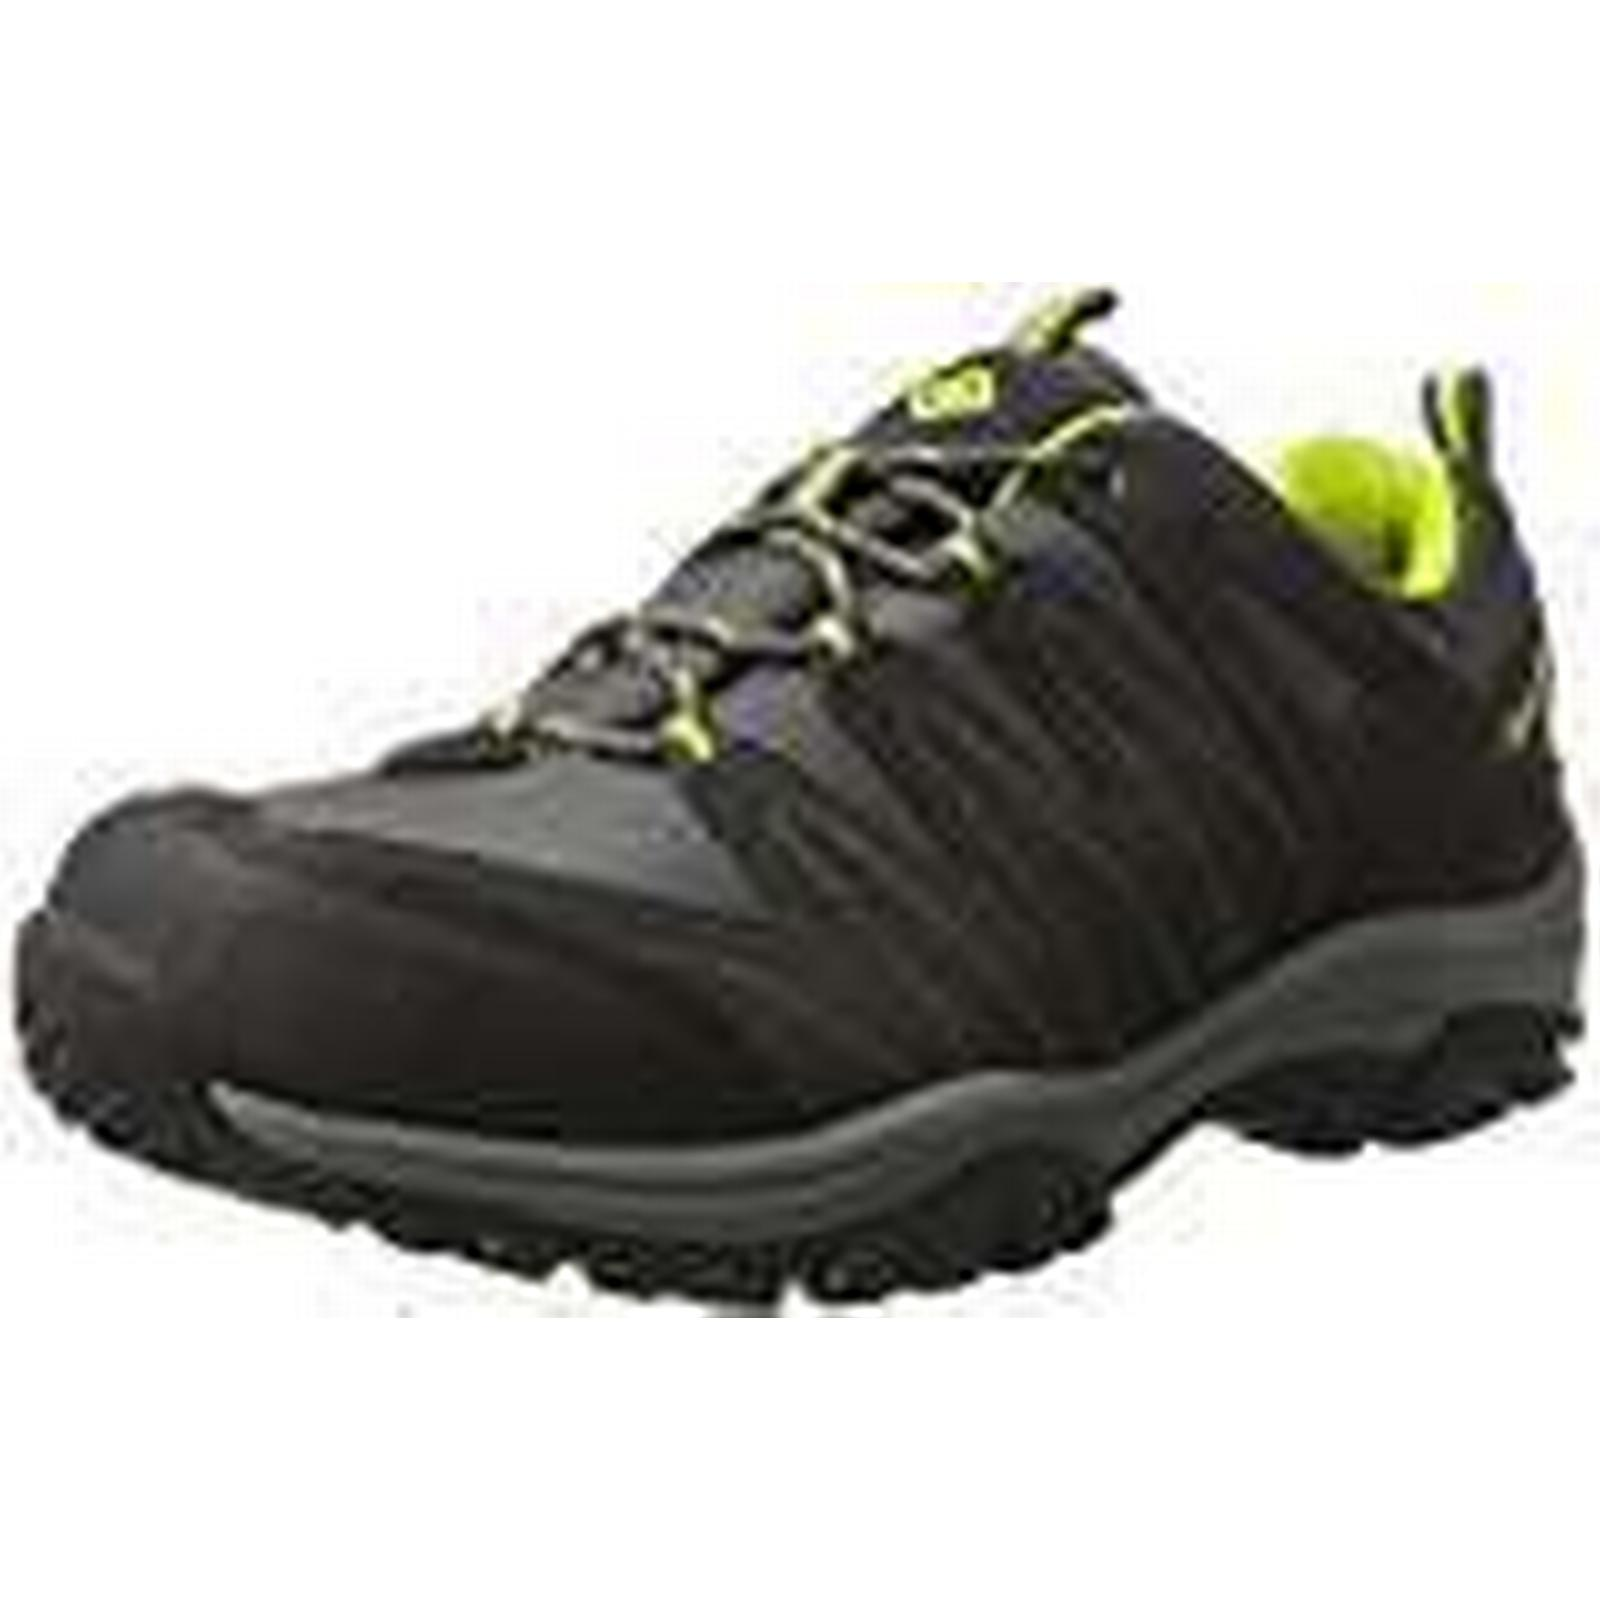 Izas Men's Hount Gree, Outdoor Hiking Shoes, Dark Grey/Light Gree, Hount One Size 2c320e